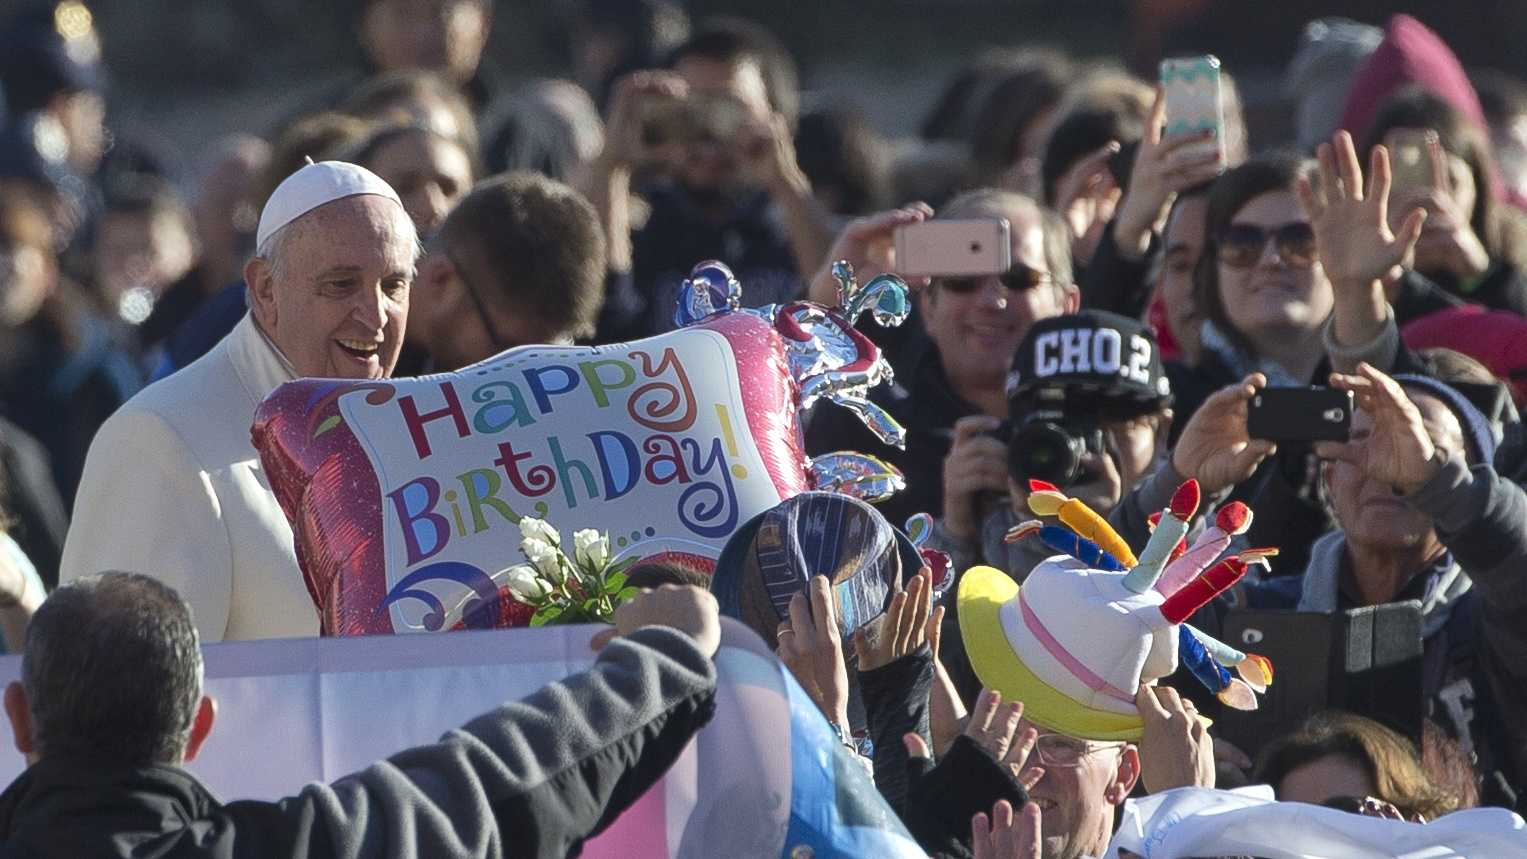 Pope Francis stands by a balloon reading Happy Birthday as he arrives for his weekly general audience in St. Peter's Square at the Vatican, Wednesday, Dec. 17, 2014. Pope Francis celebrates his 78th birthday Wednesday.